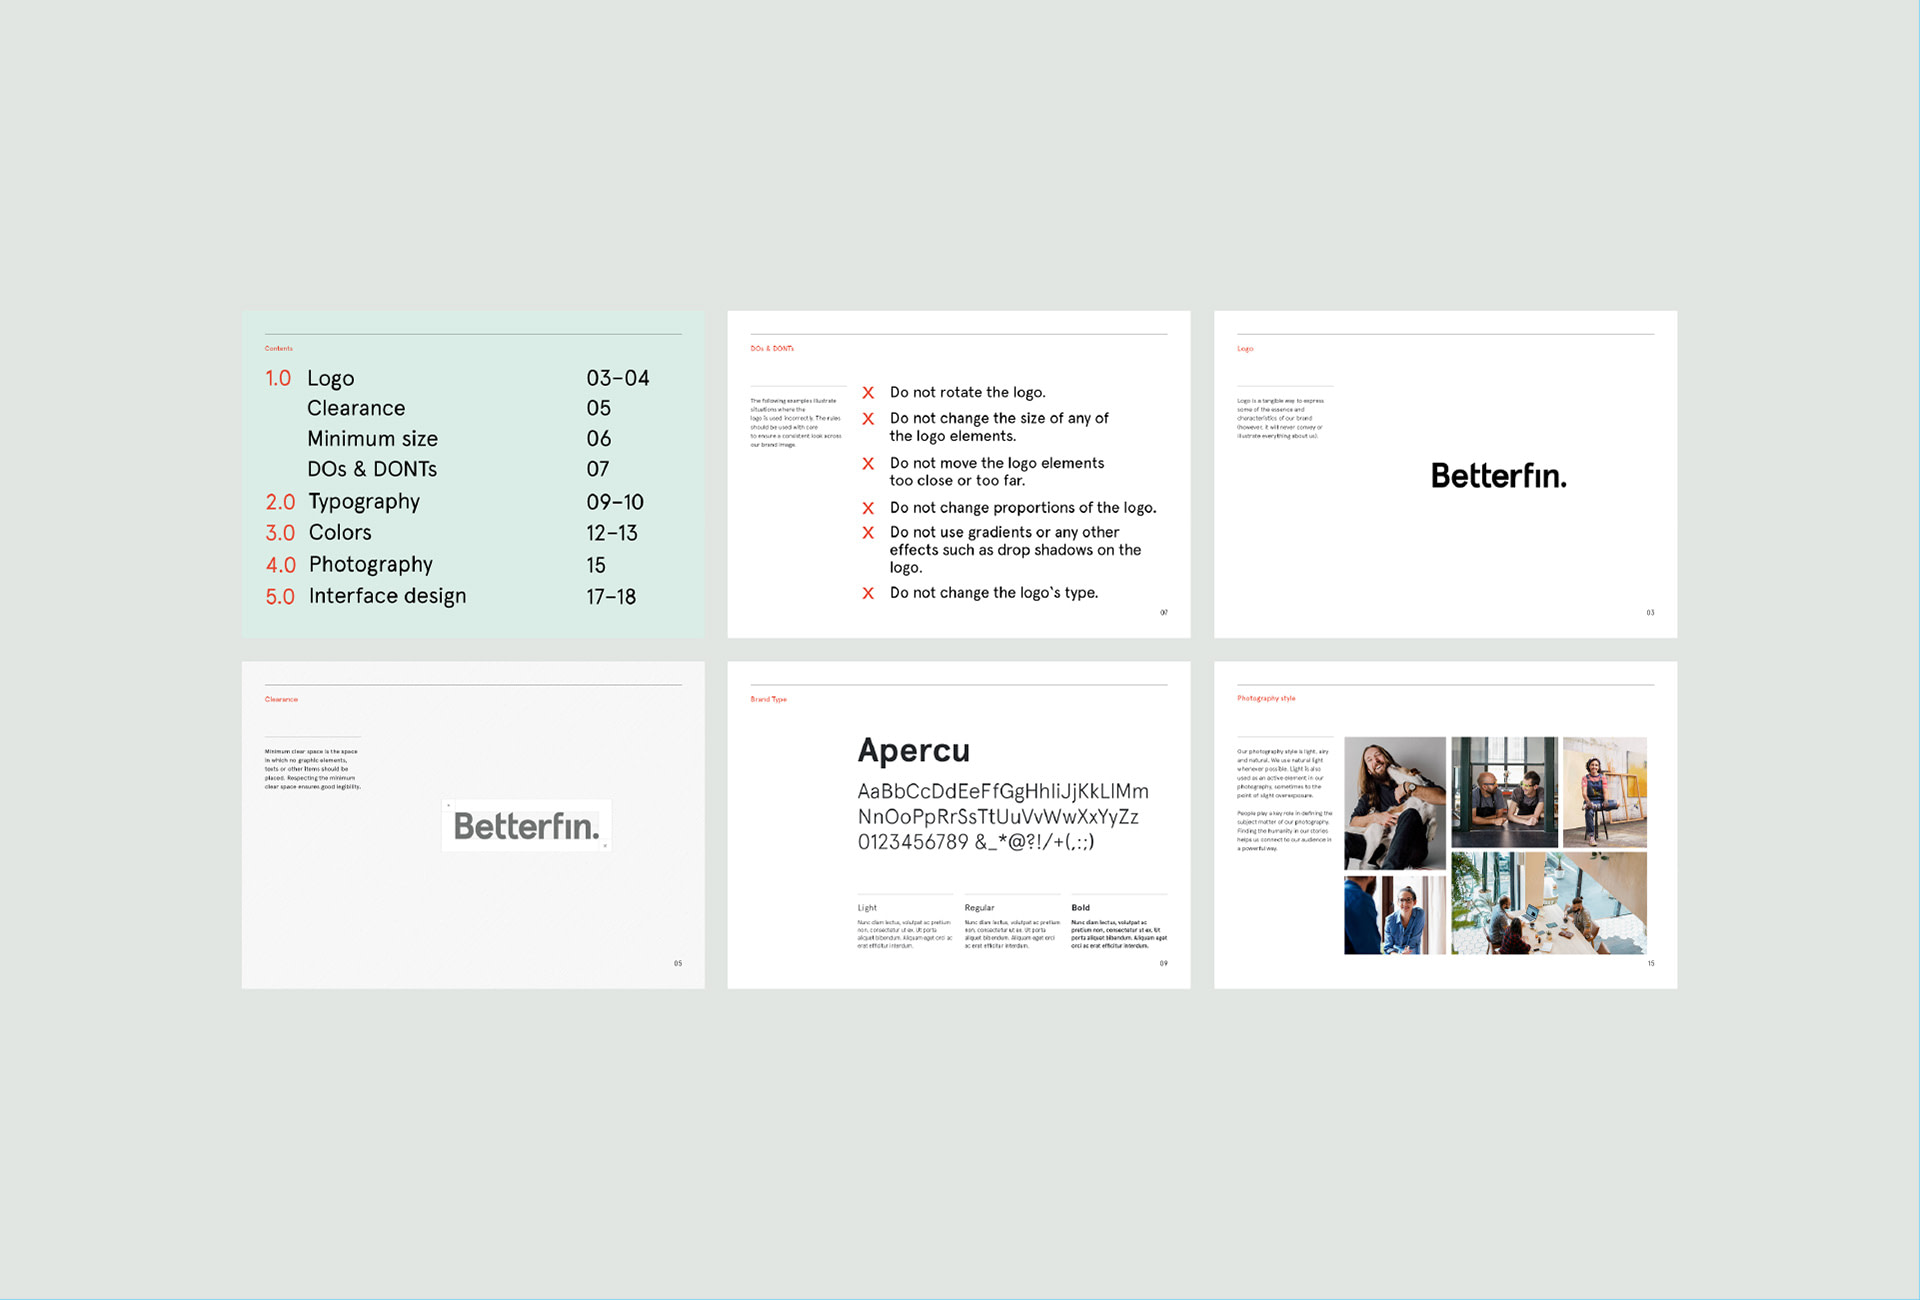 Betterfin - Case - Study - Brand-Identity-Guidelines